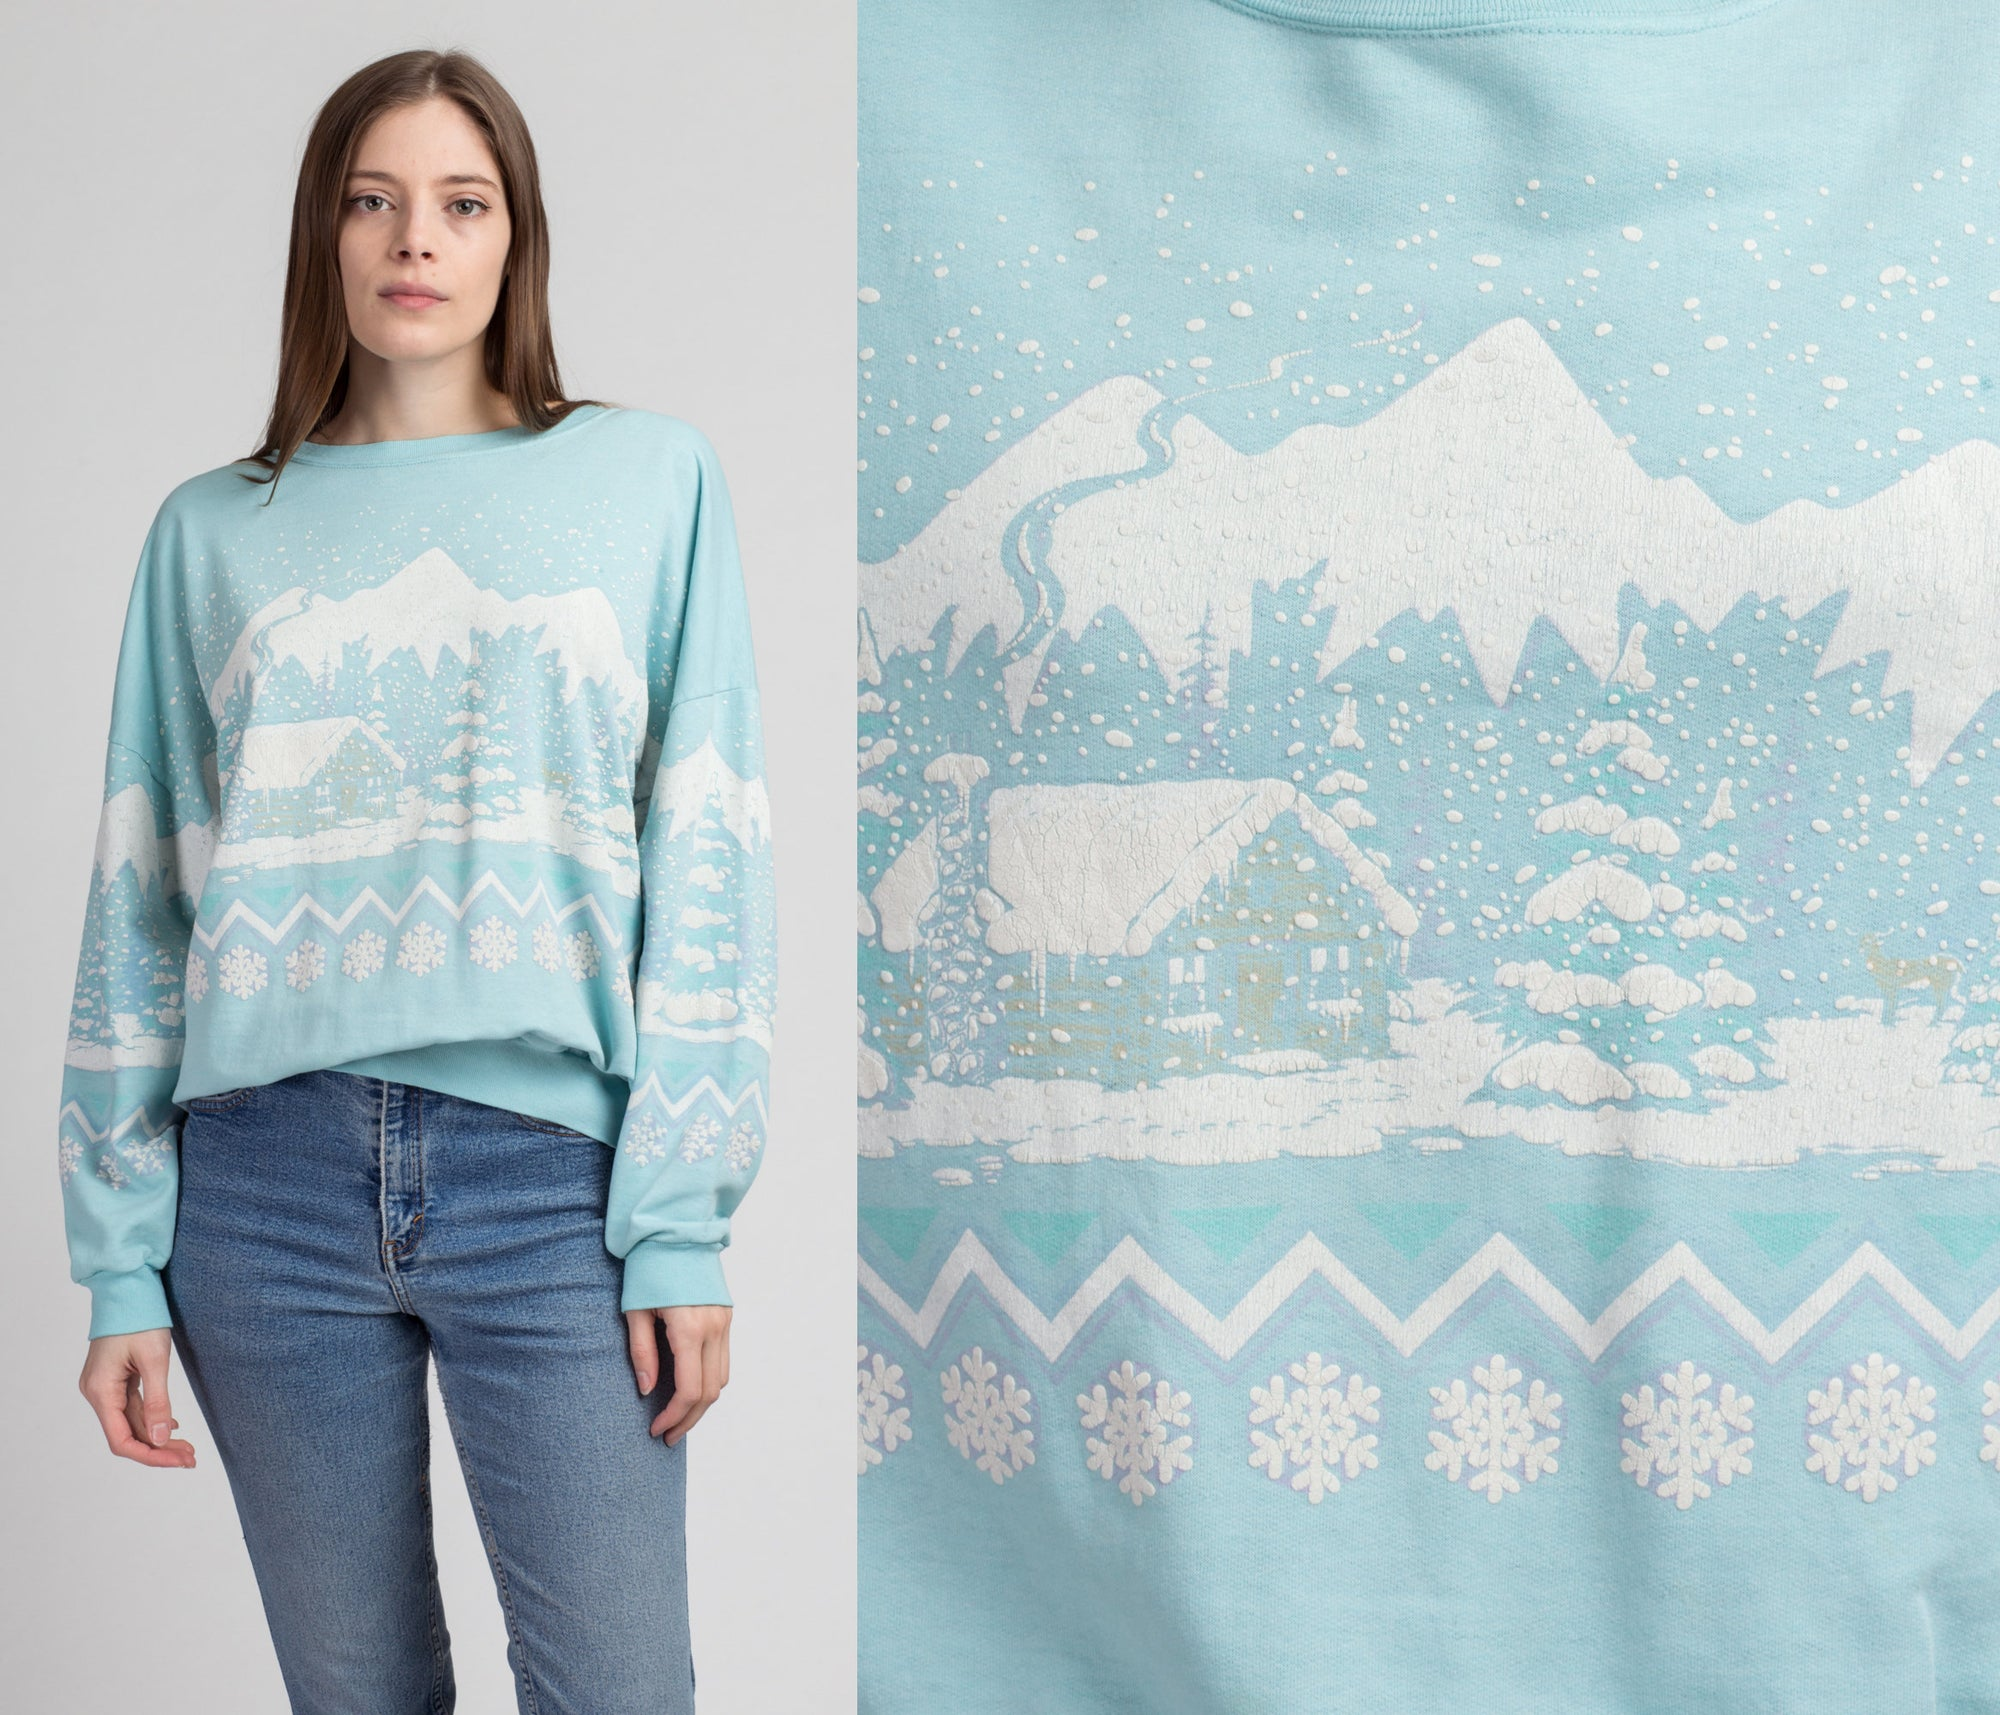 90s Winter Snow Scene All-Over Puffy Print Sweatshirt - Extra Large | Vintage Oversize Blue Graphic Retro Pullover